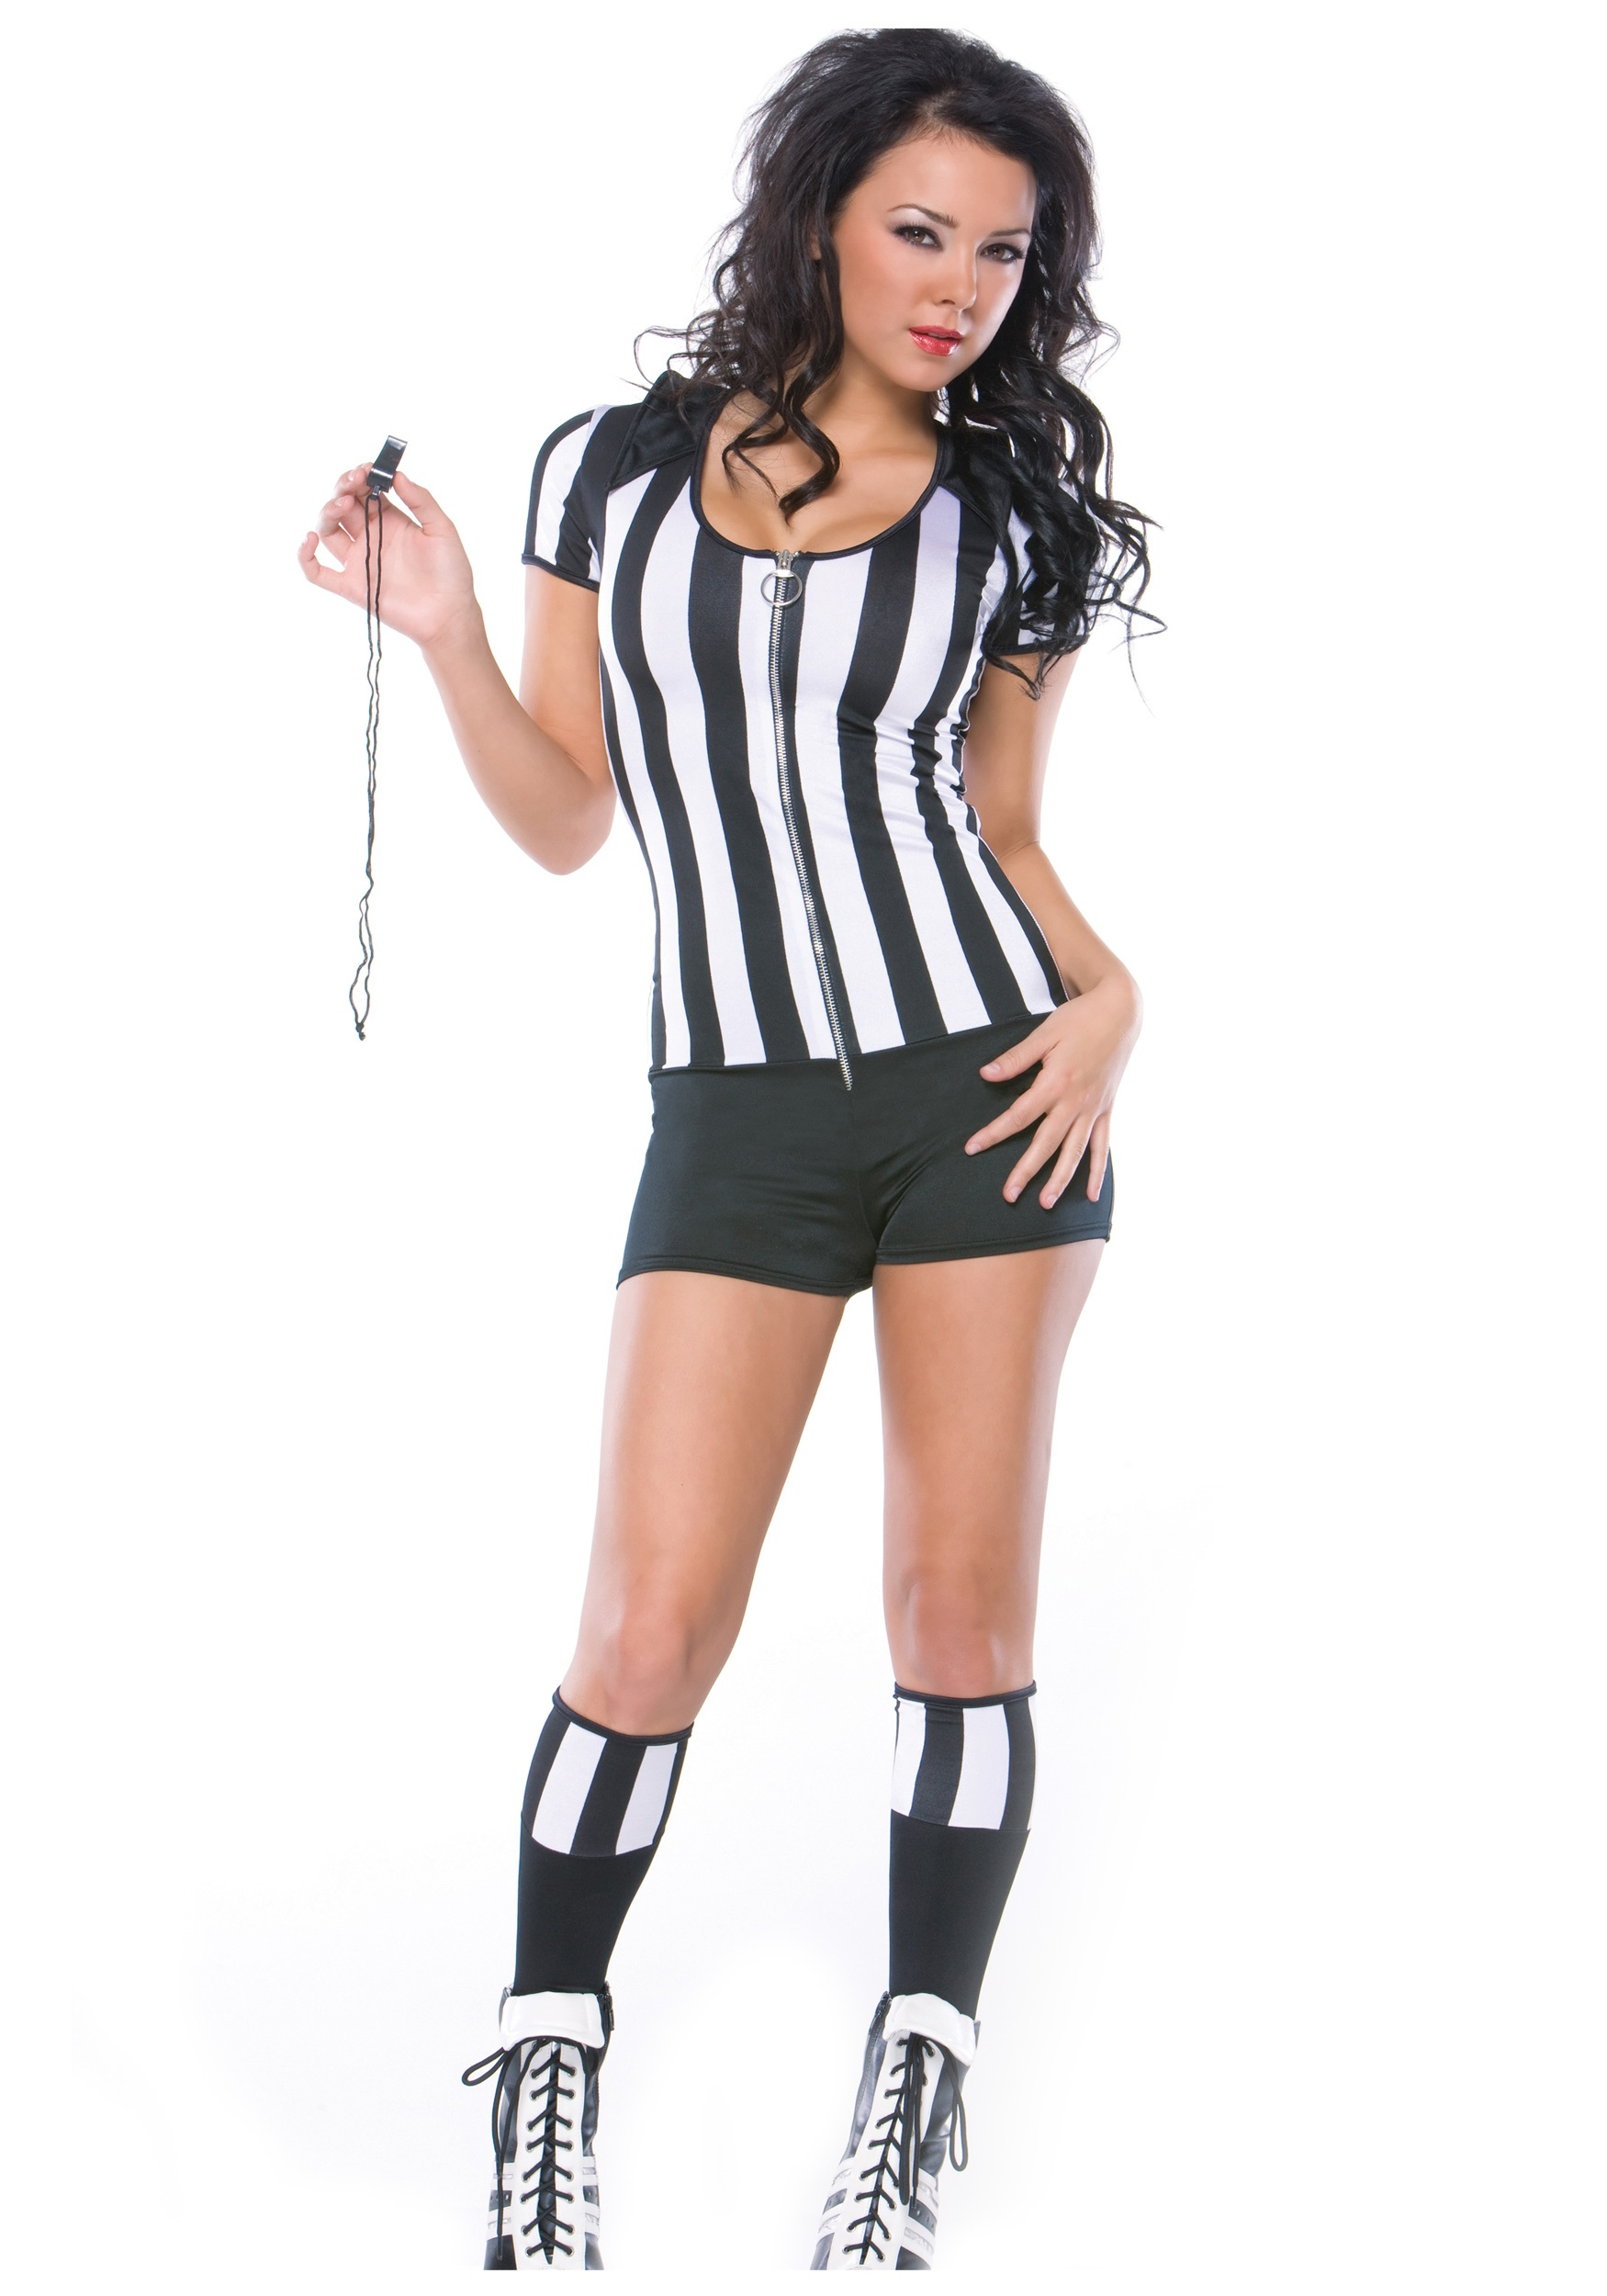 Time Out Referee Costume  sc 1 st  Halloween Costumes & Time Out Referee Costume - Halloween Costumes